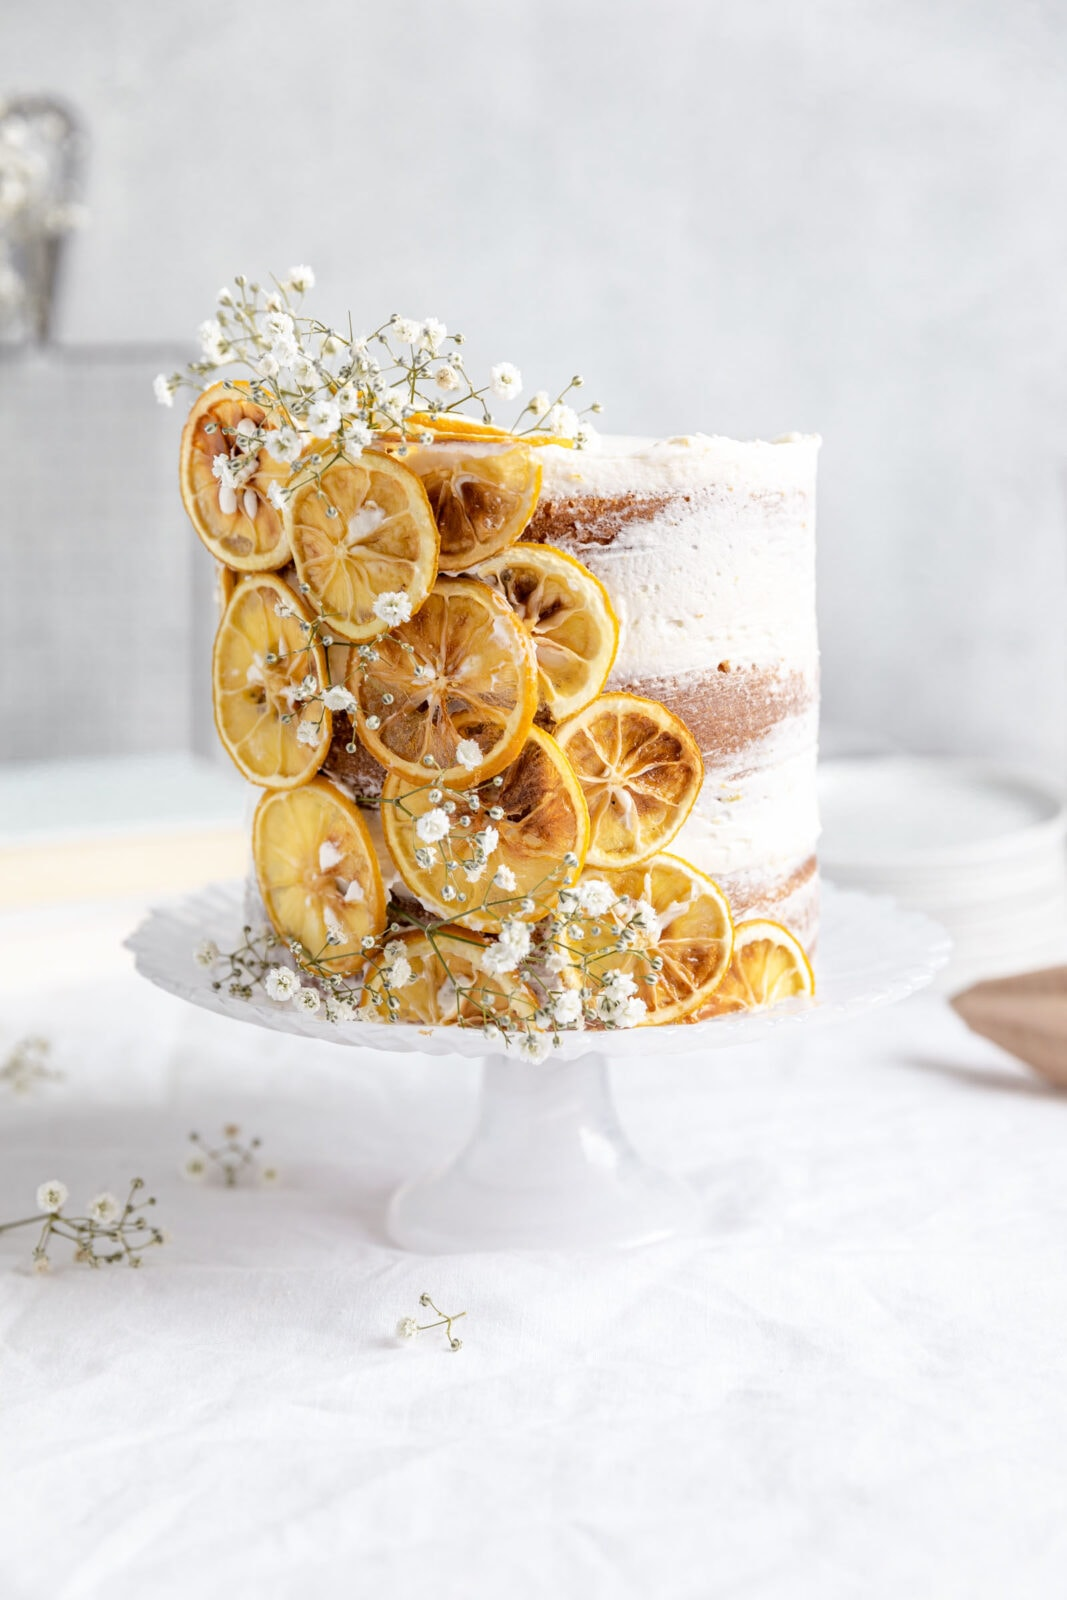 lemon layer cake with lemon garnish